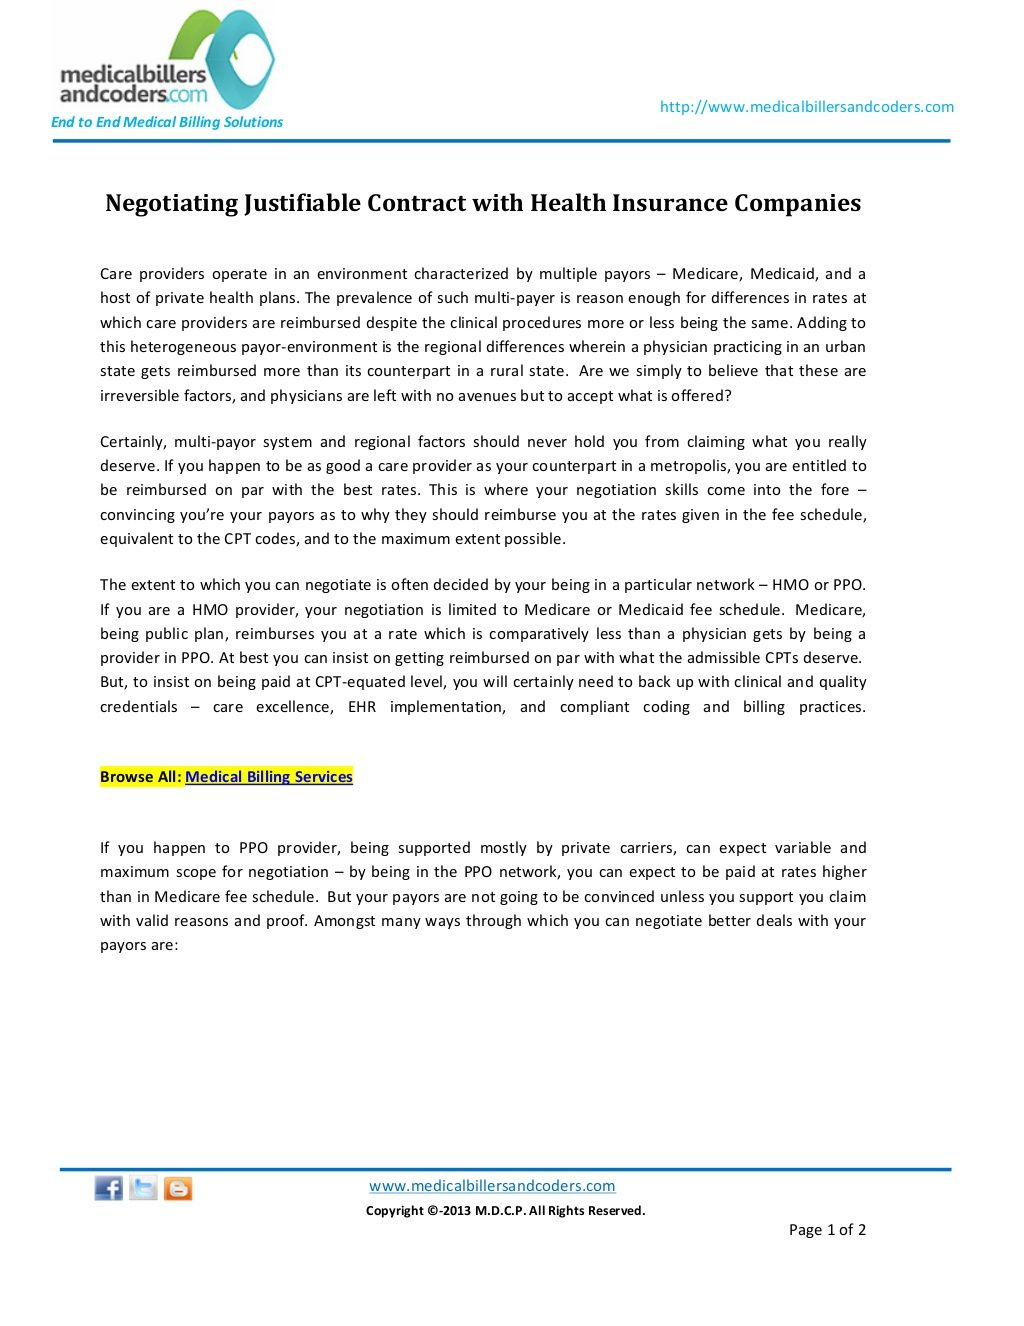 Negotiating Justifiablecontractwithhealthinsurancecompanies By Medicalbillersandcoders Via Slideshare Health Insurance Companies Negotiation Health Insurance